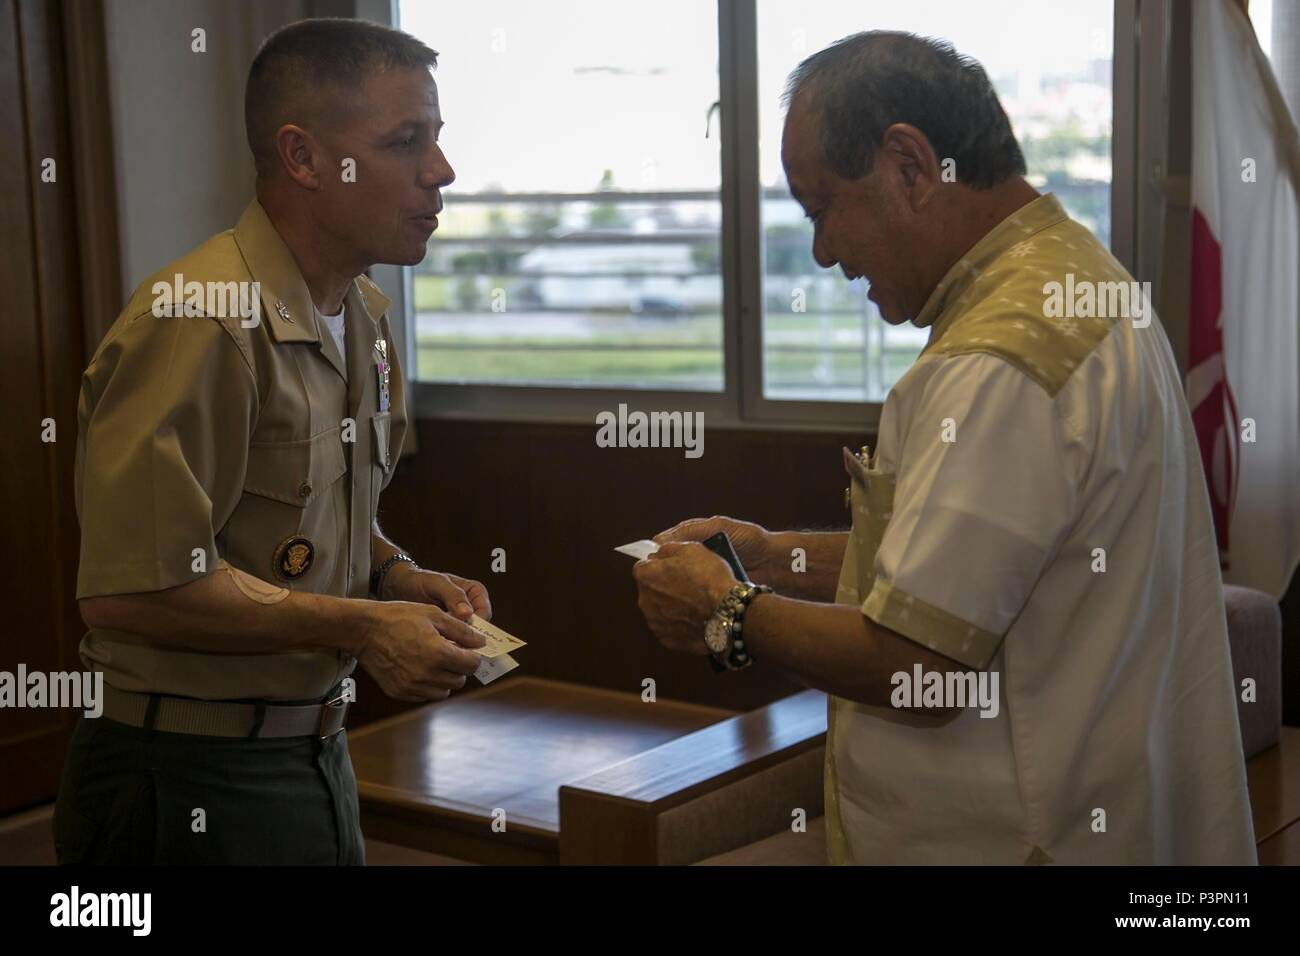 Col william l depue exchanges business cards with masaharu noguni william l depue exchanges business cards with masaharu noguni july 22 in chatan okinawa japan the exchange was part of a courtesy visit to noguni reheart Gallery